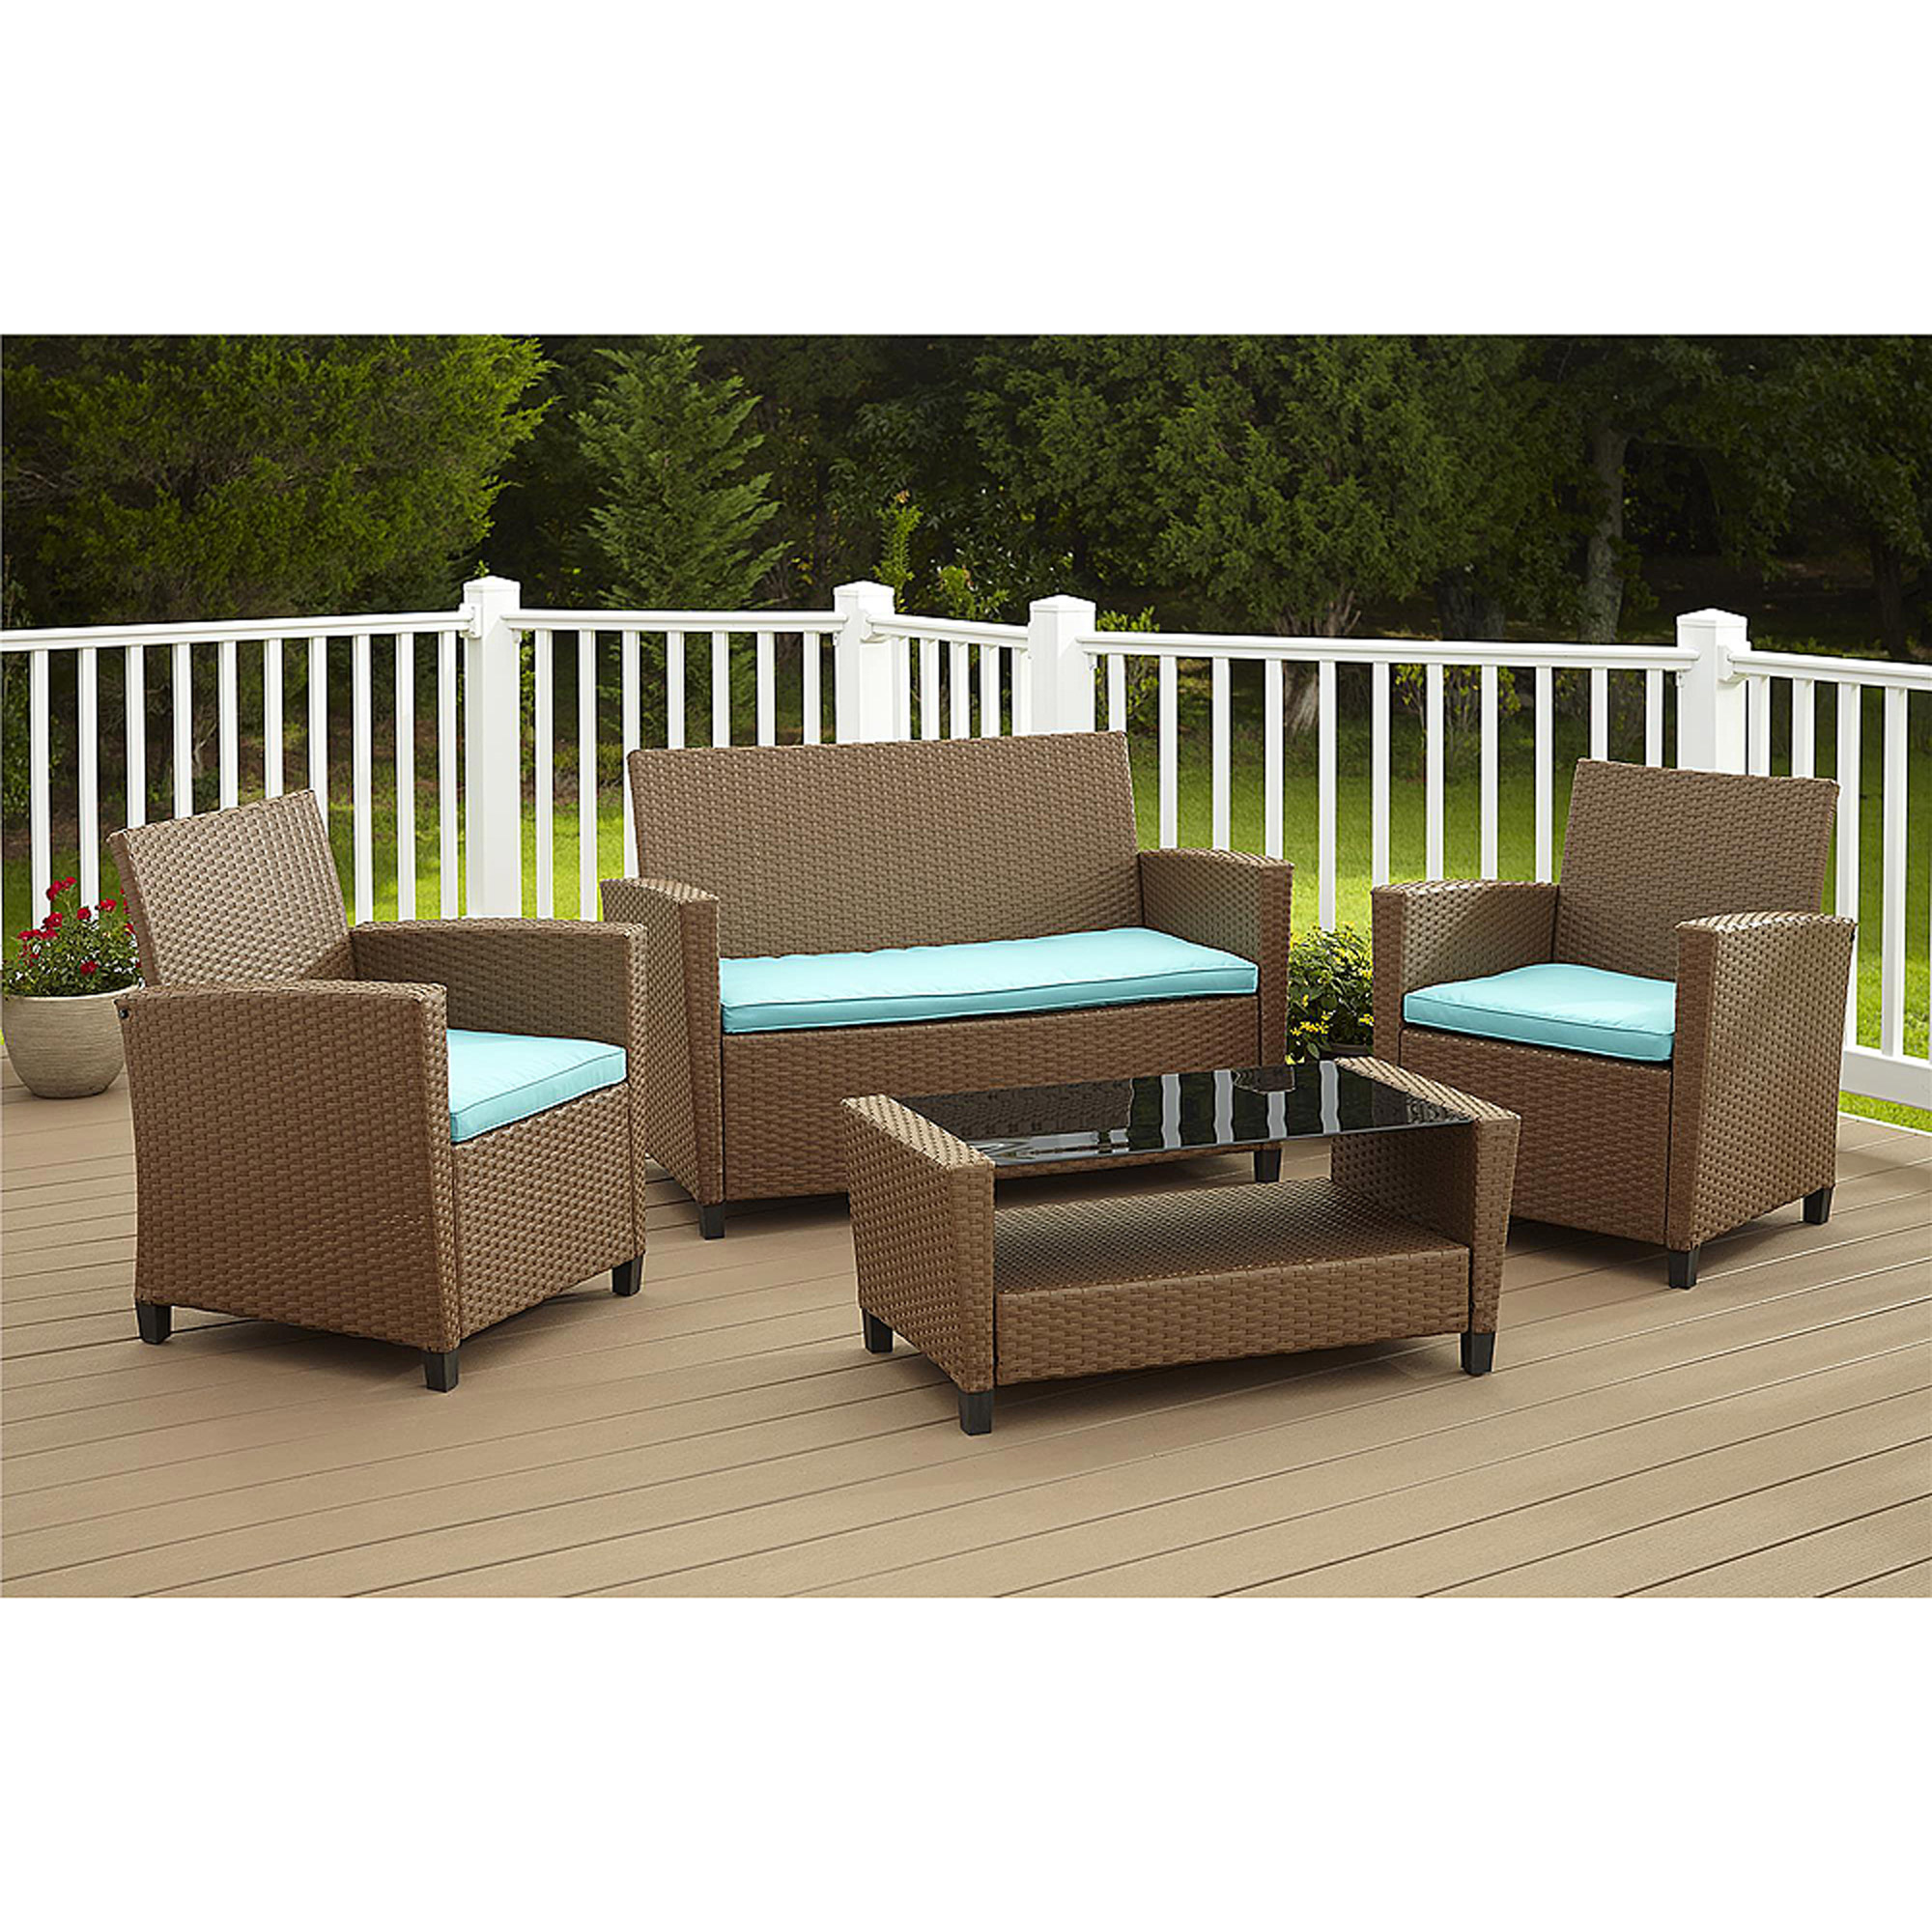 Nice Cosco Outdoor Malmo 4 Piece Resin Wicker Patio Conversation Set